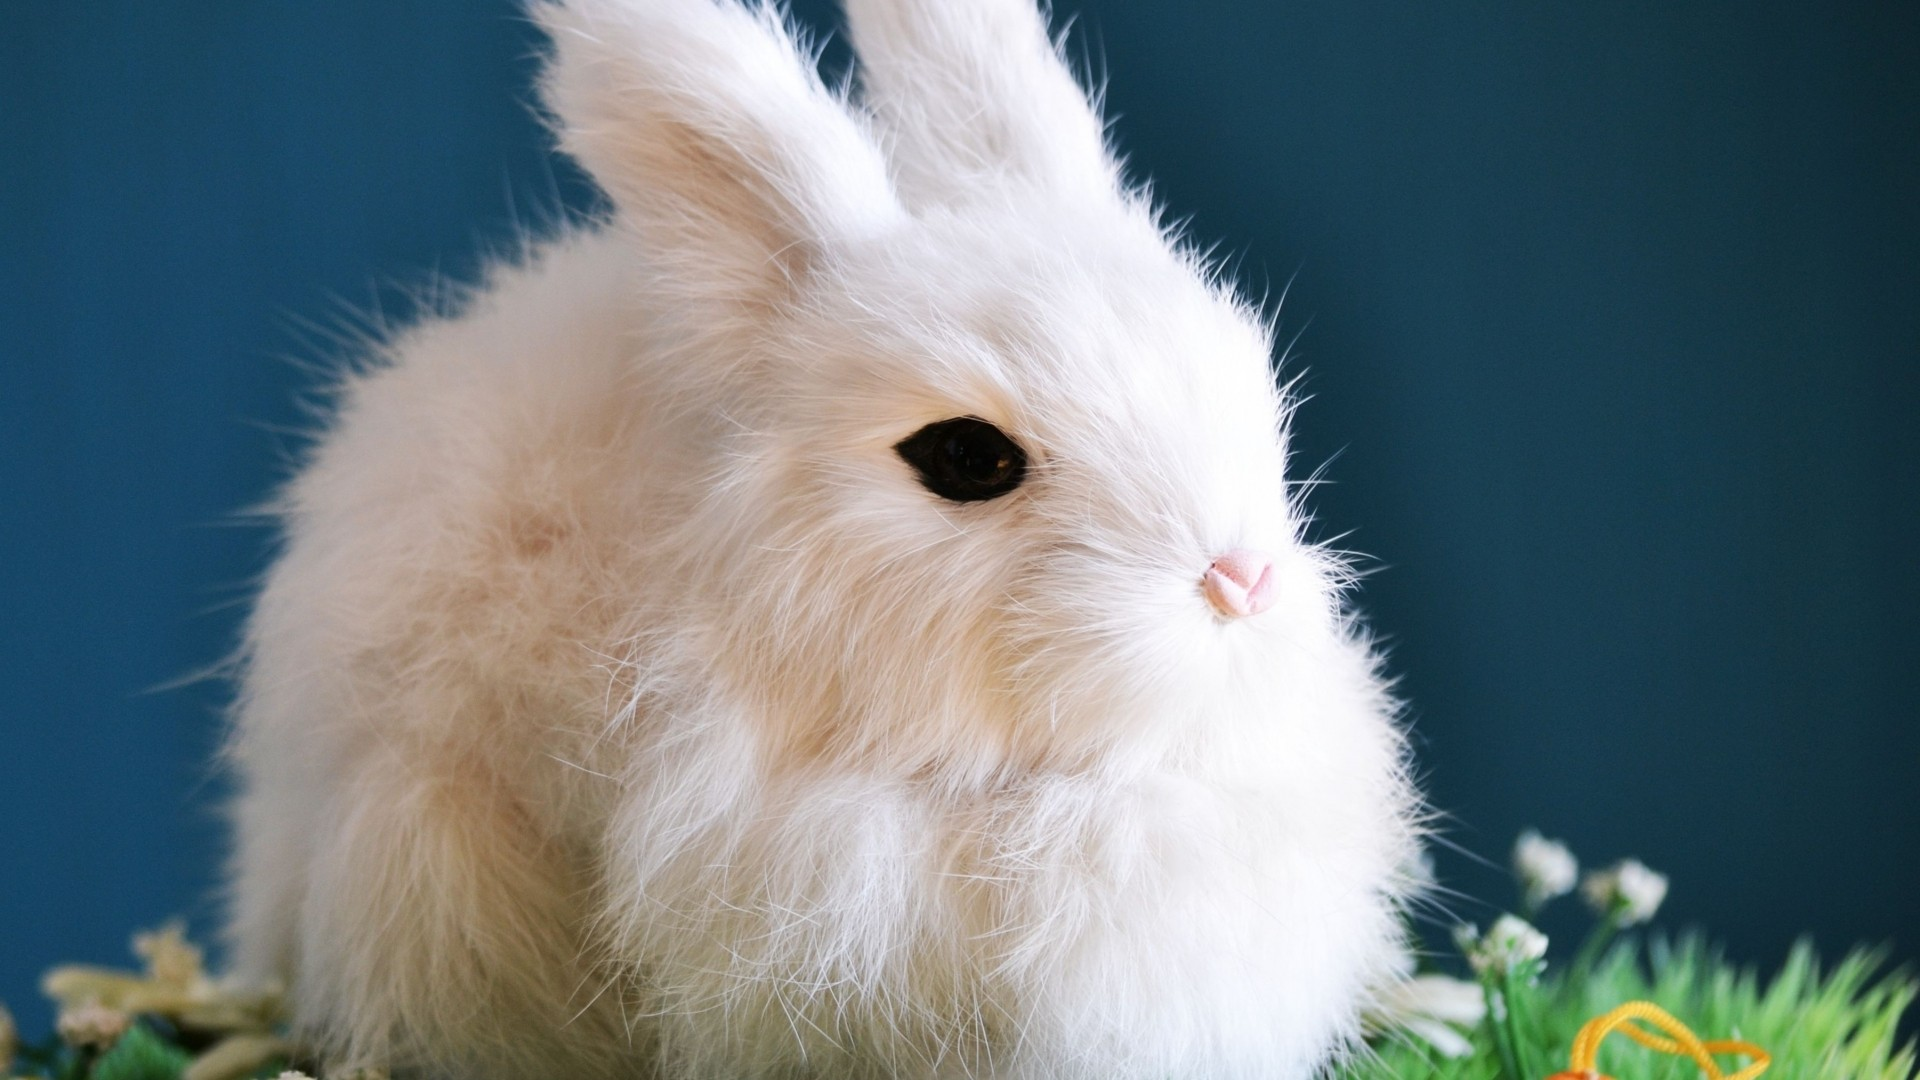 Bunny Wallpaper for pc